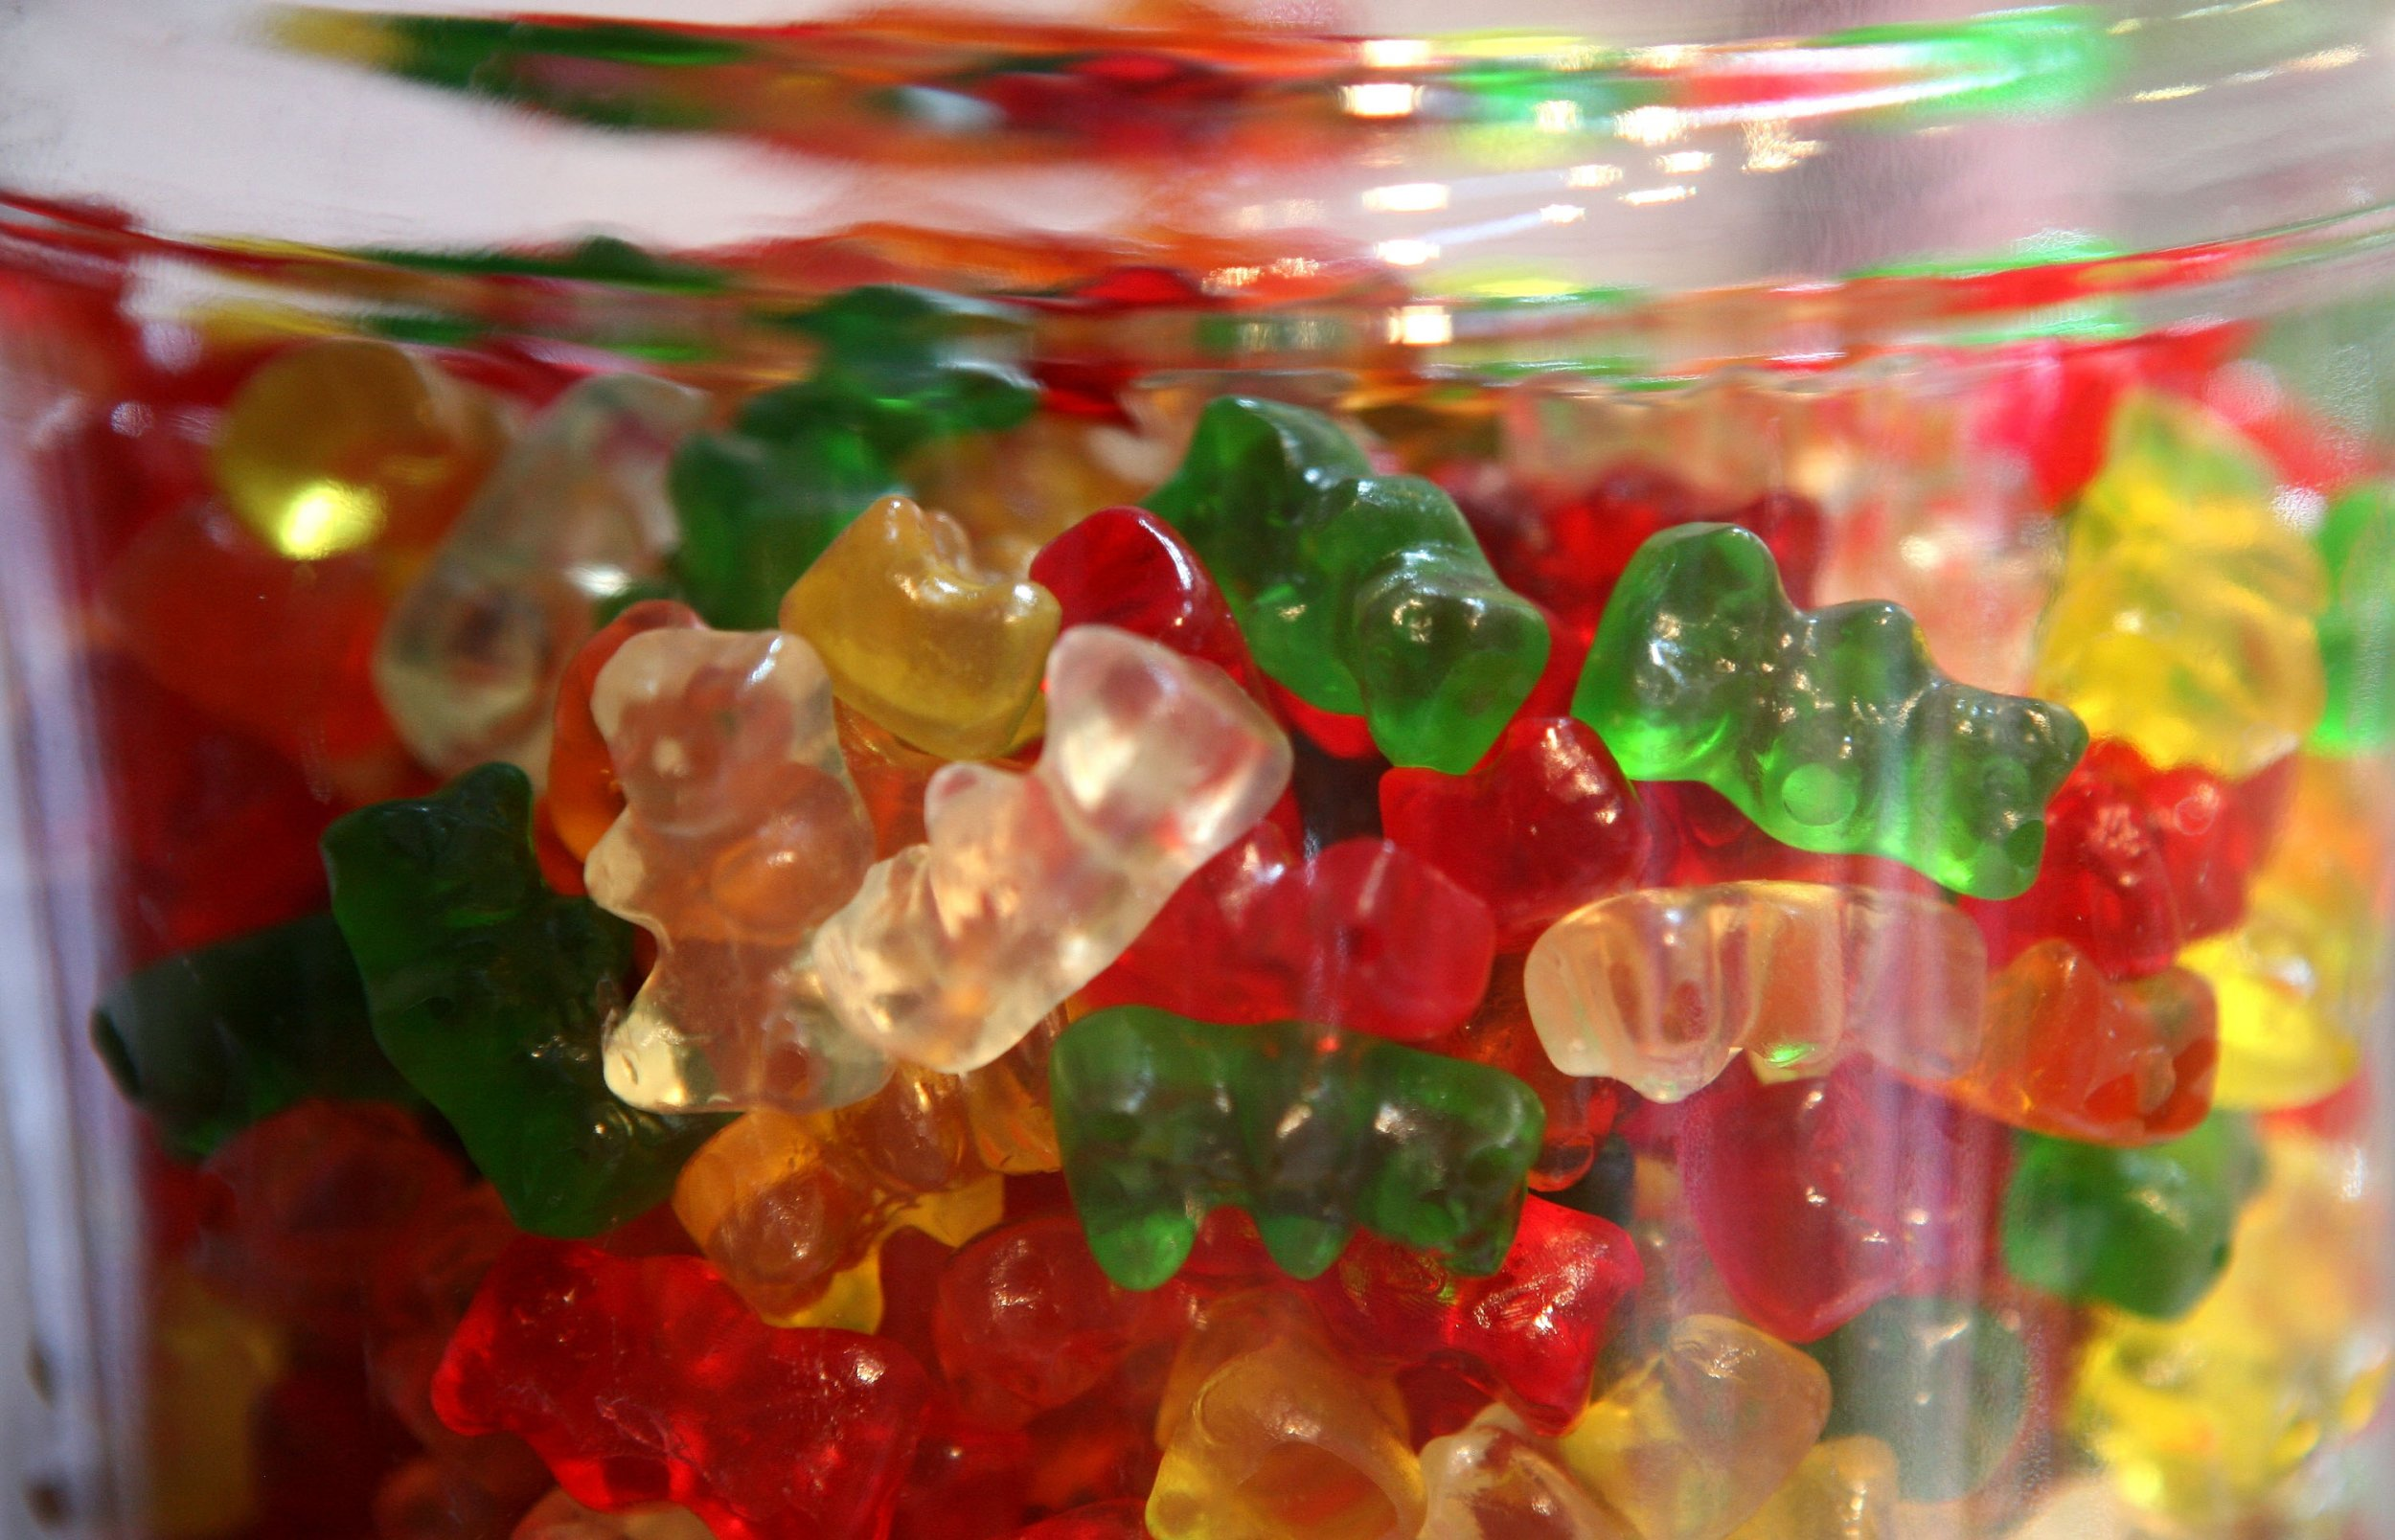 How to Make Weed Gummy Bears